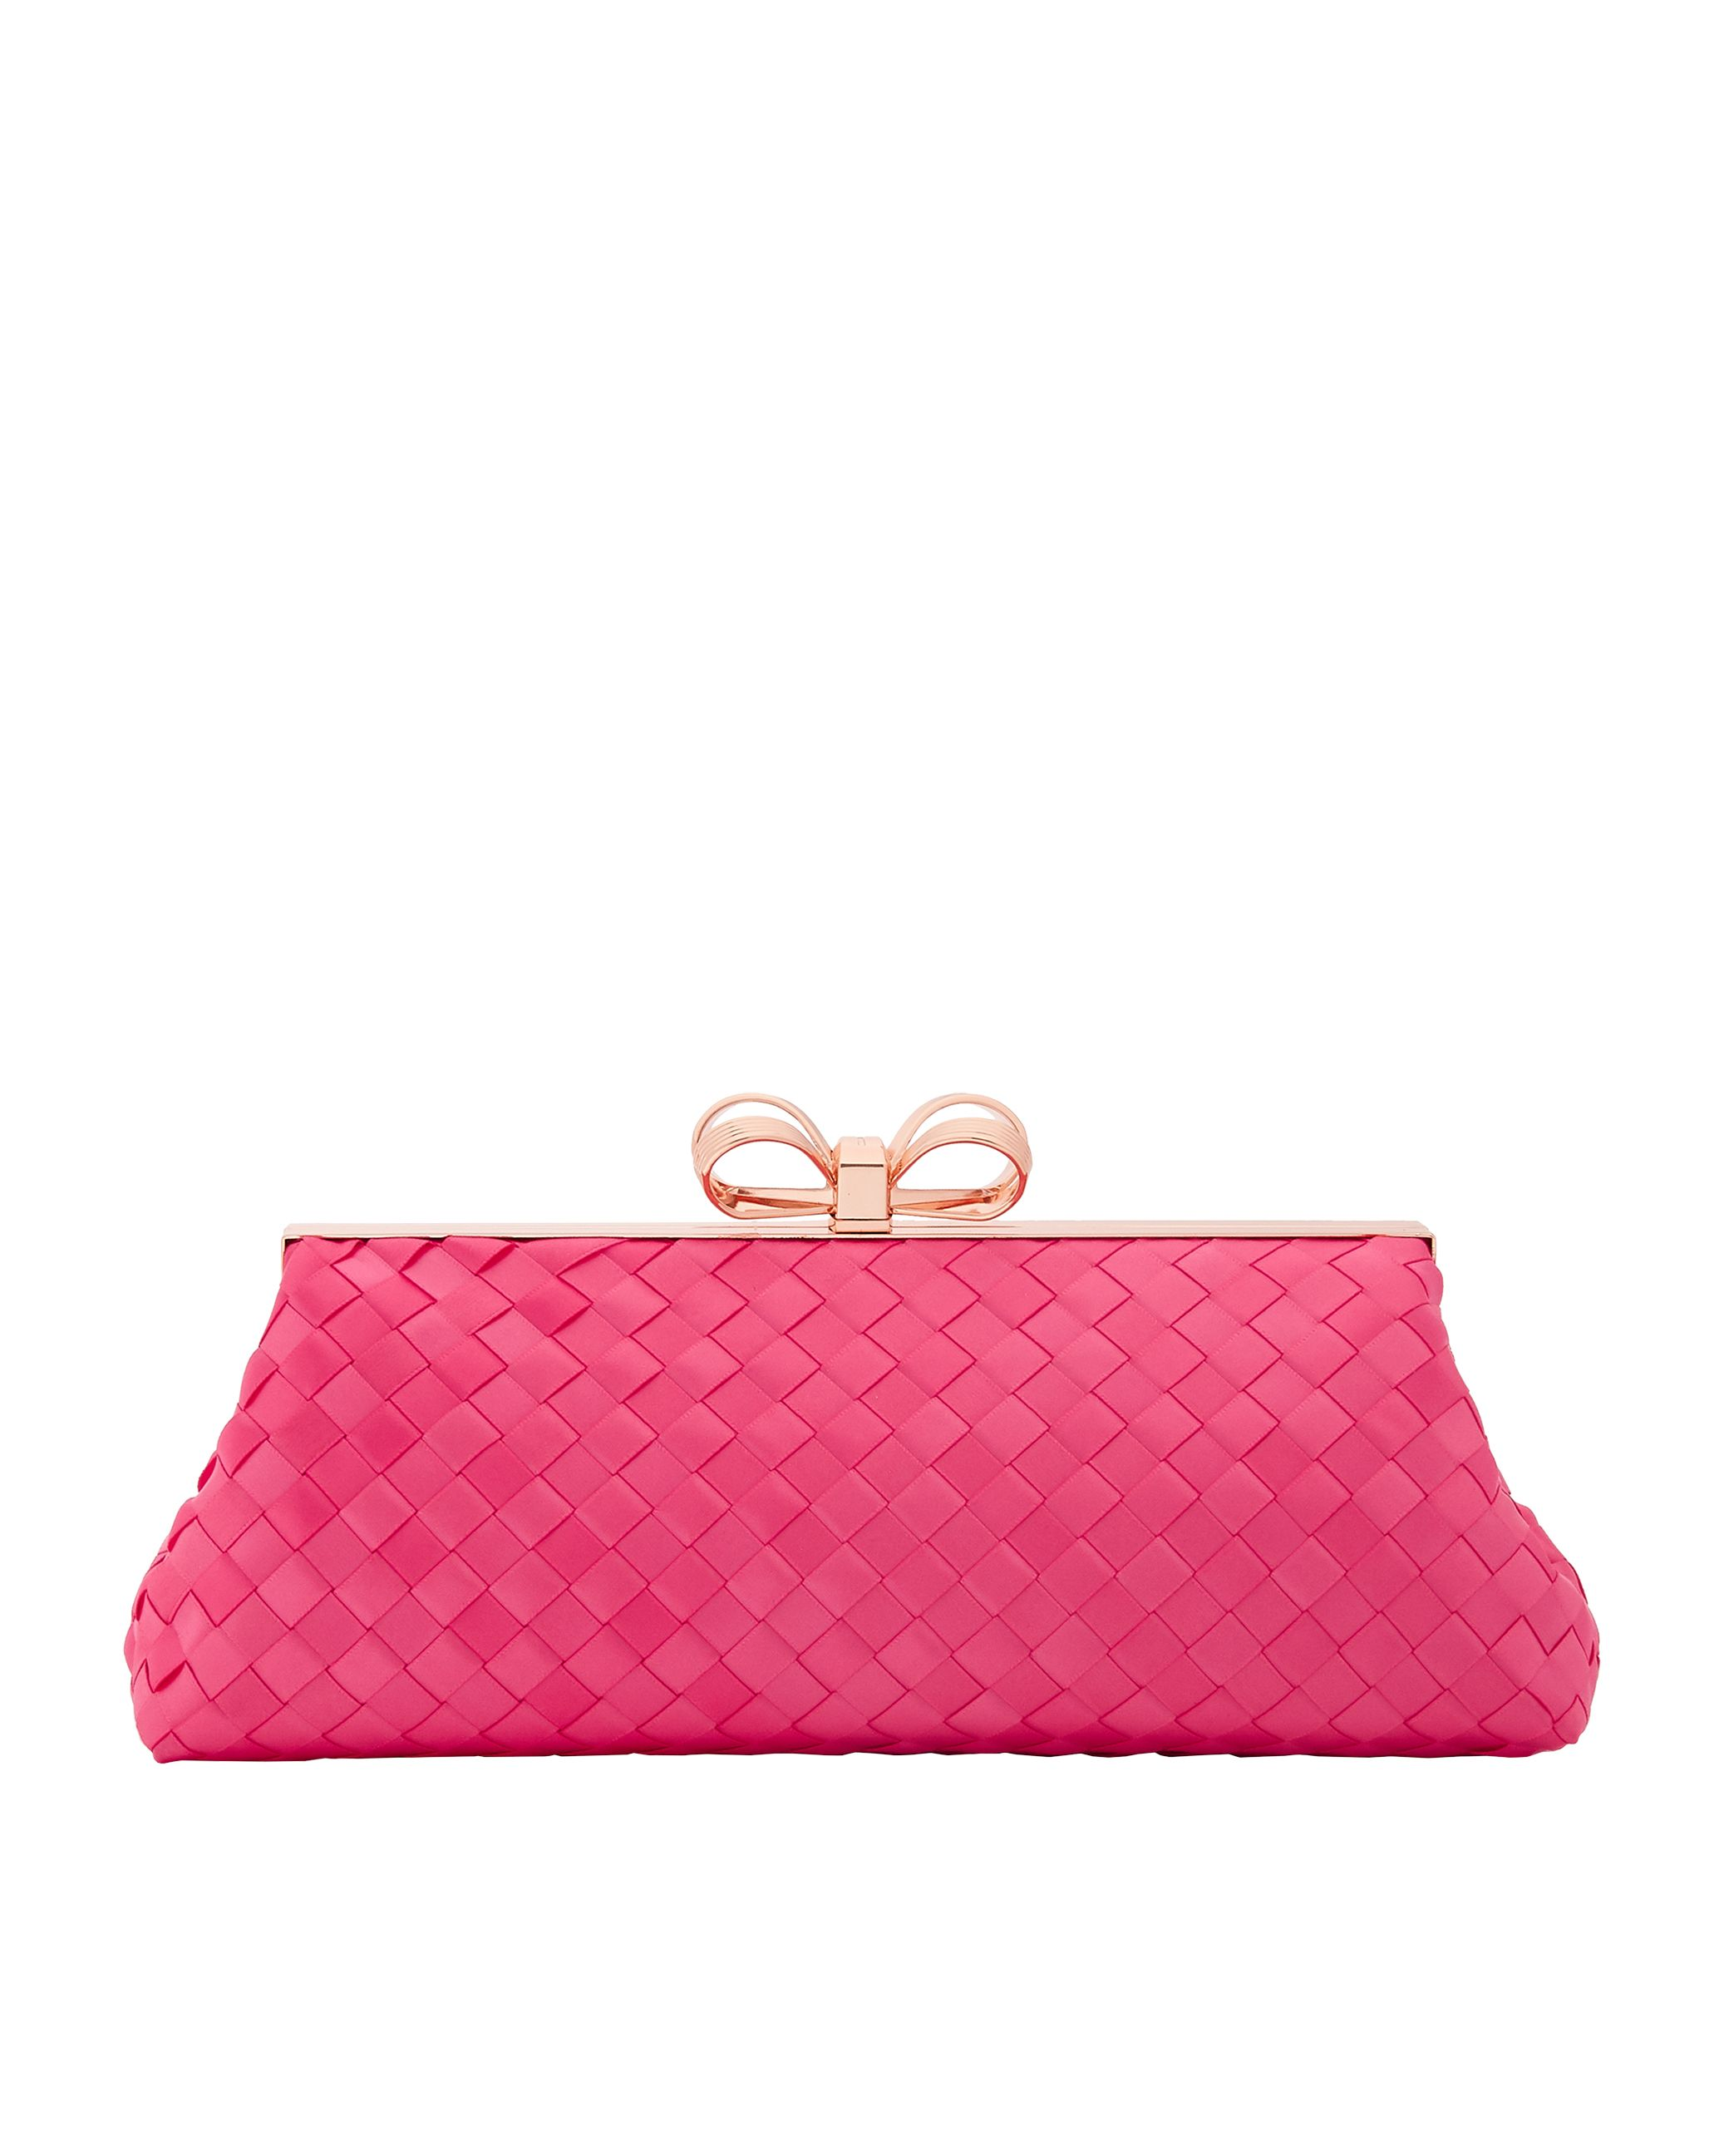 Ted Baker Alaina Woven Clutch Bag, Mid Pink